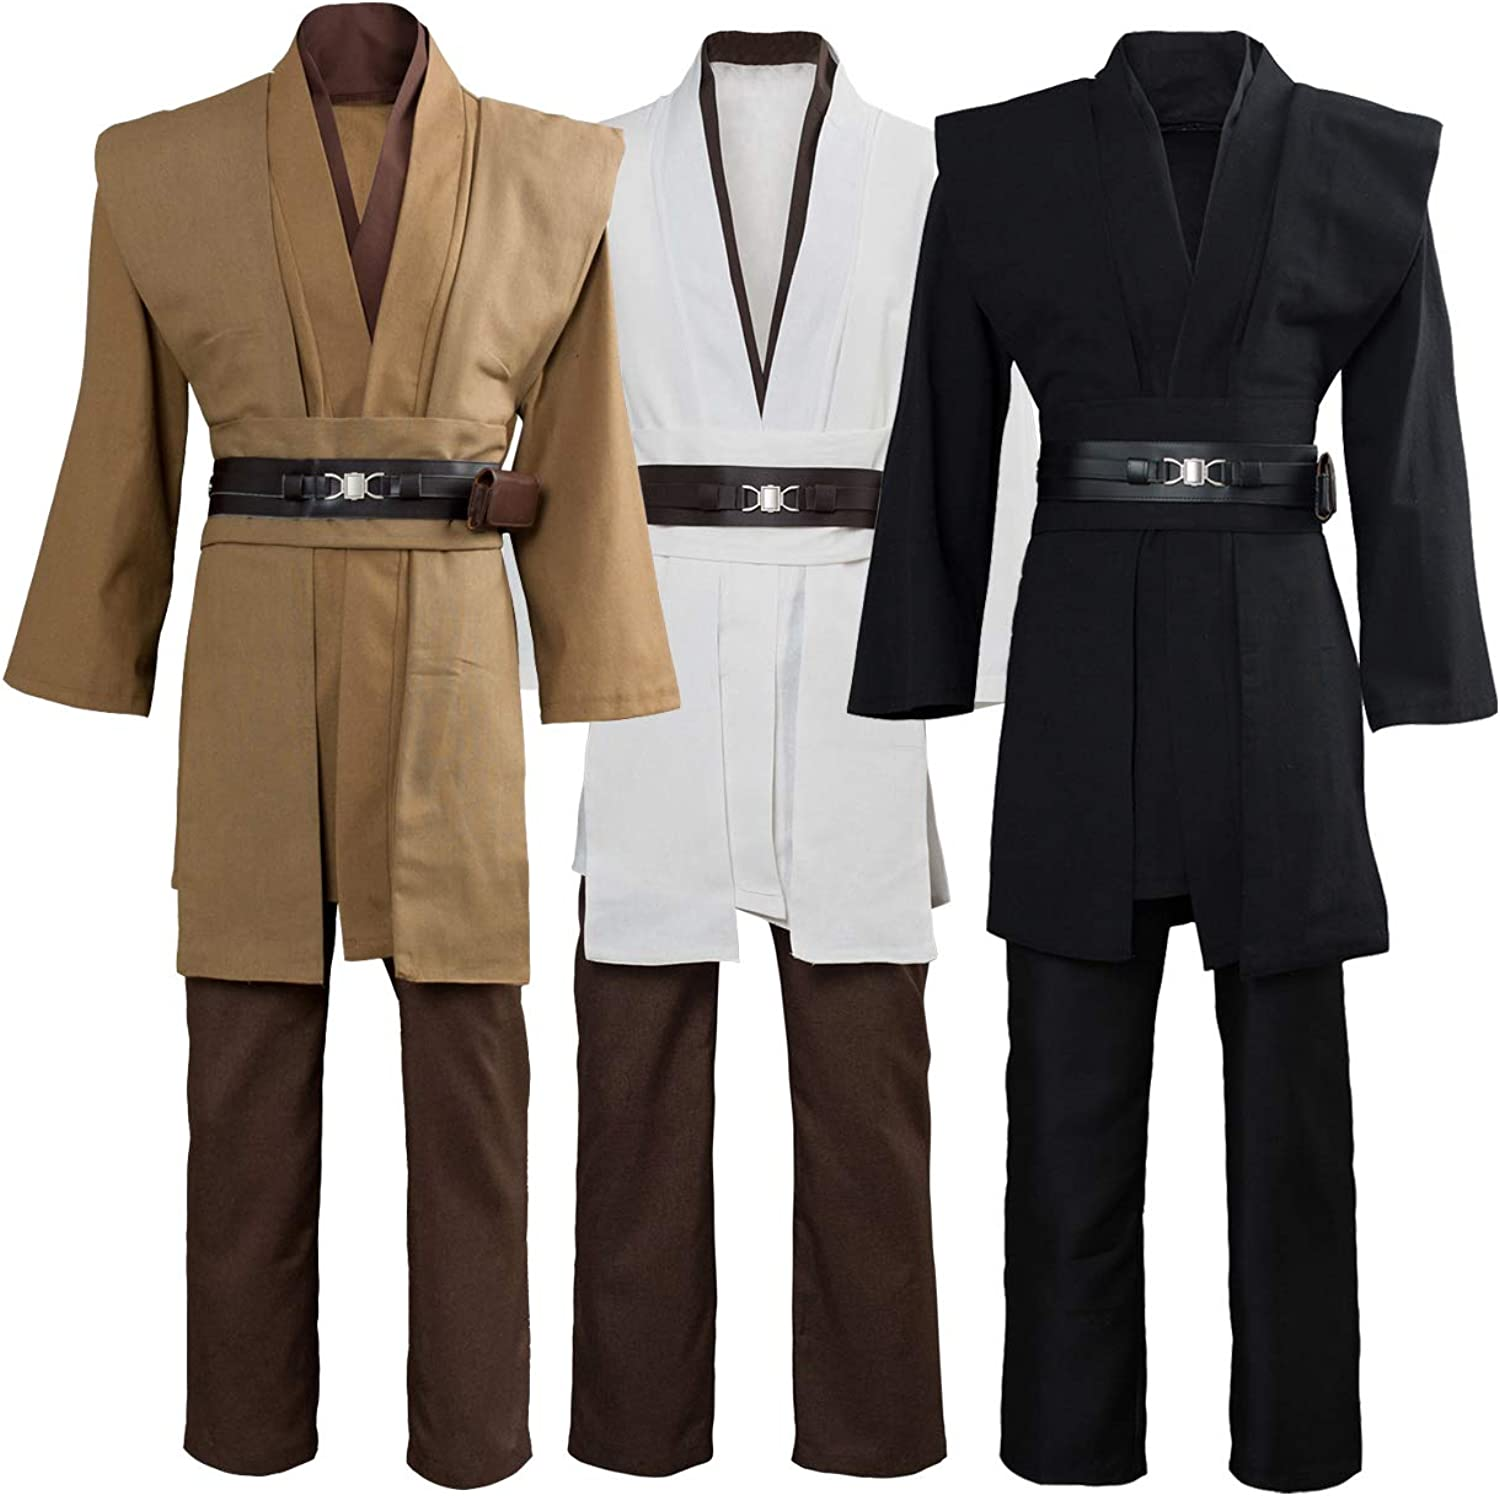 Tunic Costume Ranking TOP19 Mens Hooded Robe Full Cosplay New arrival Set Halloween